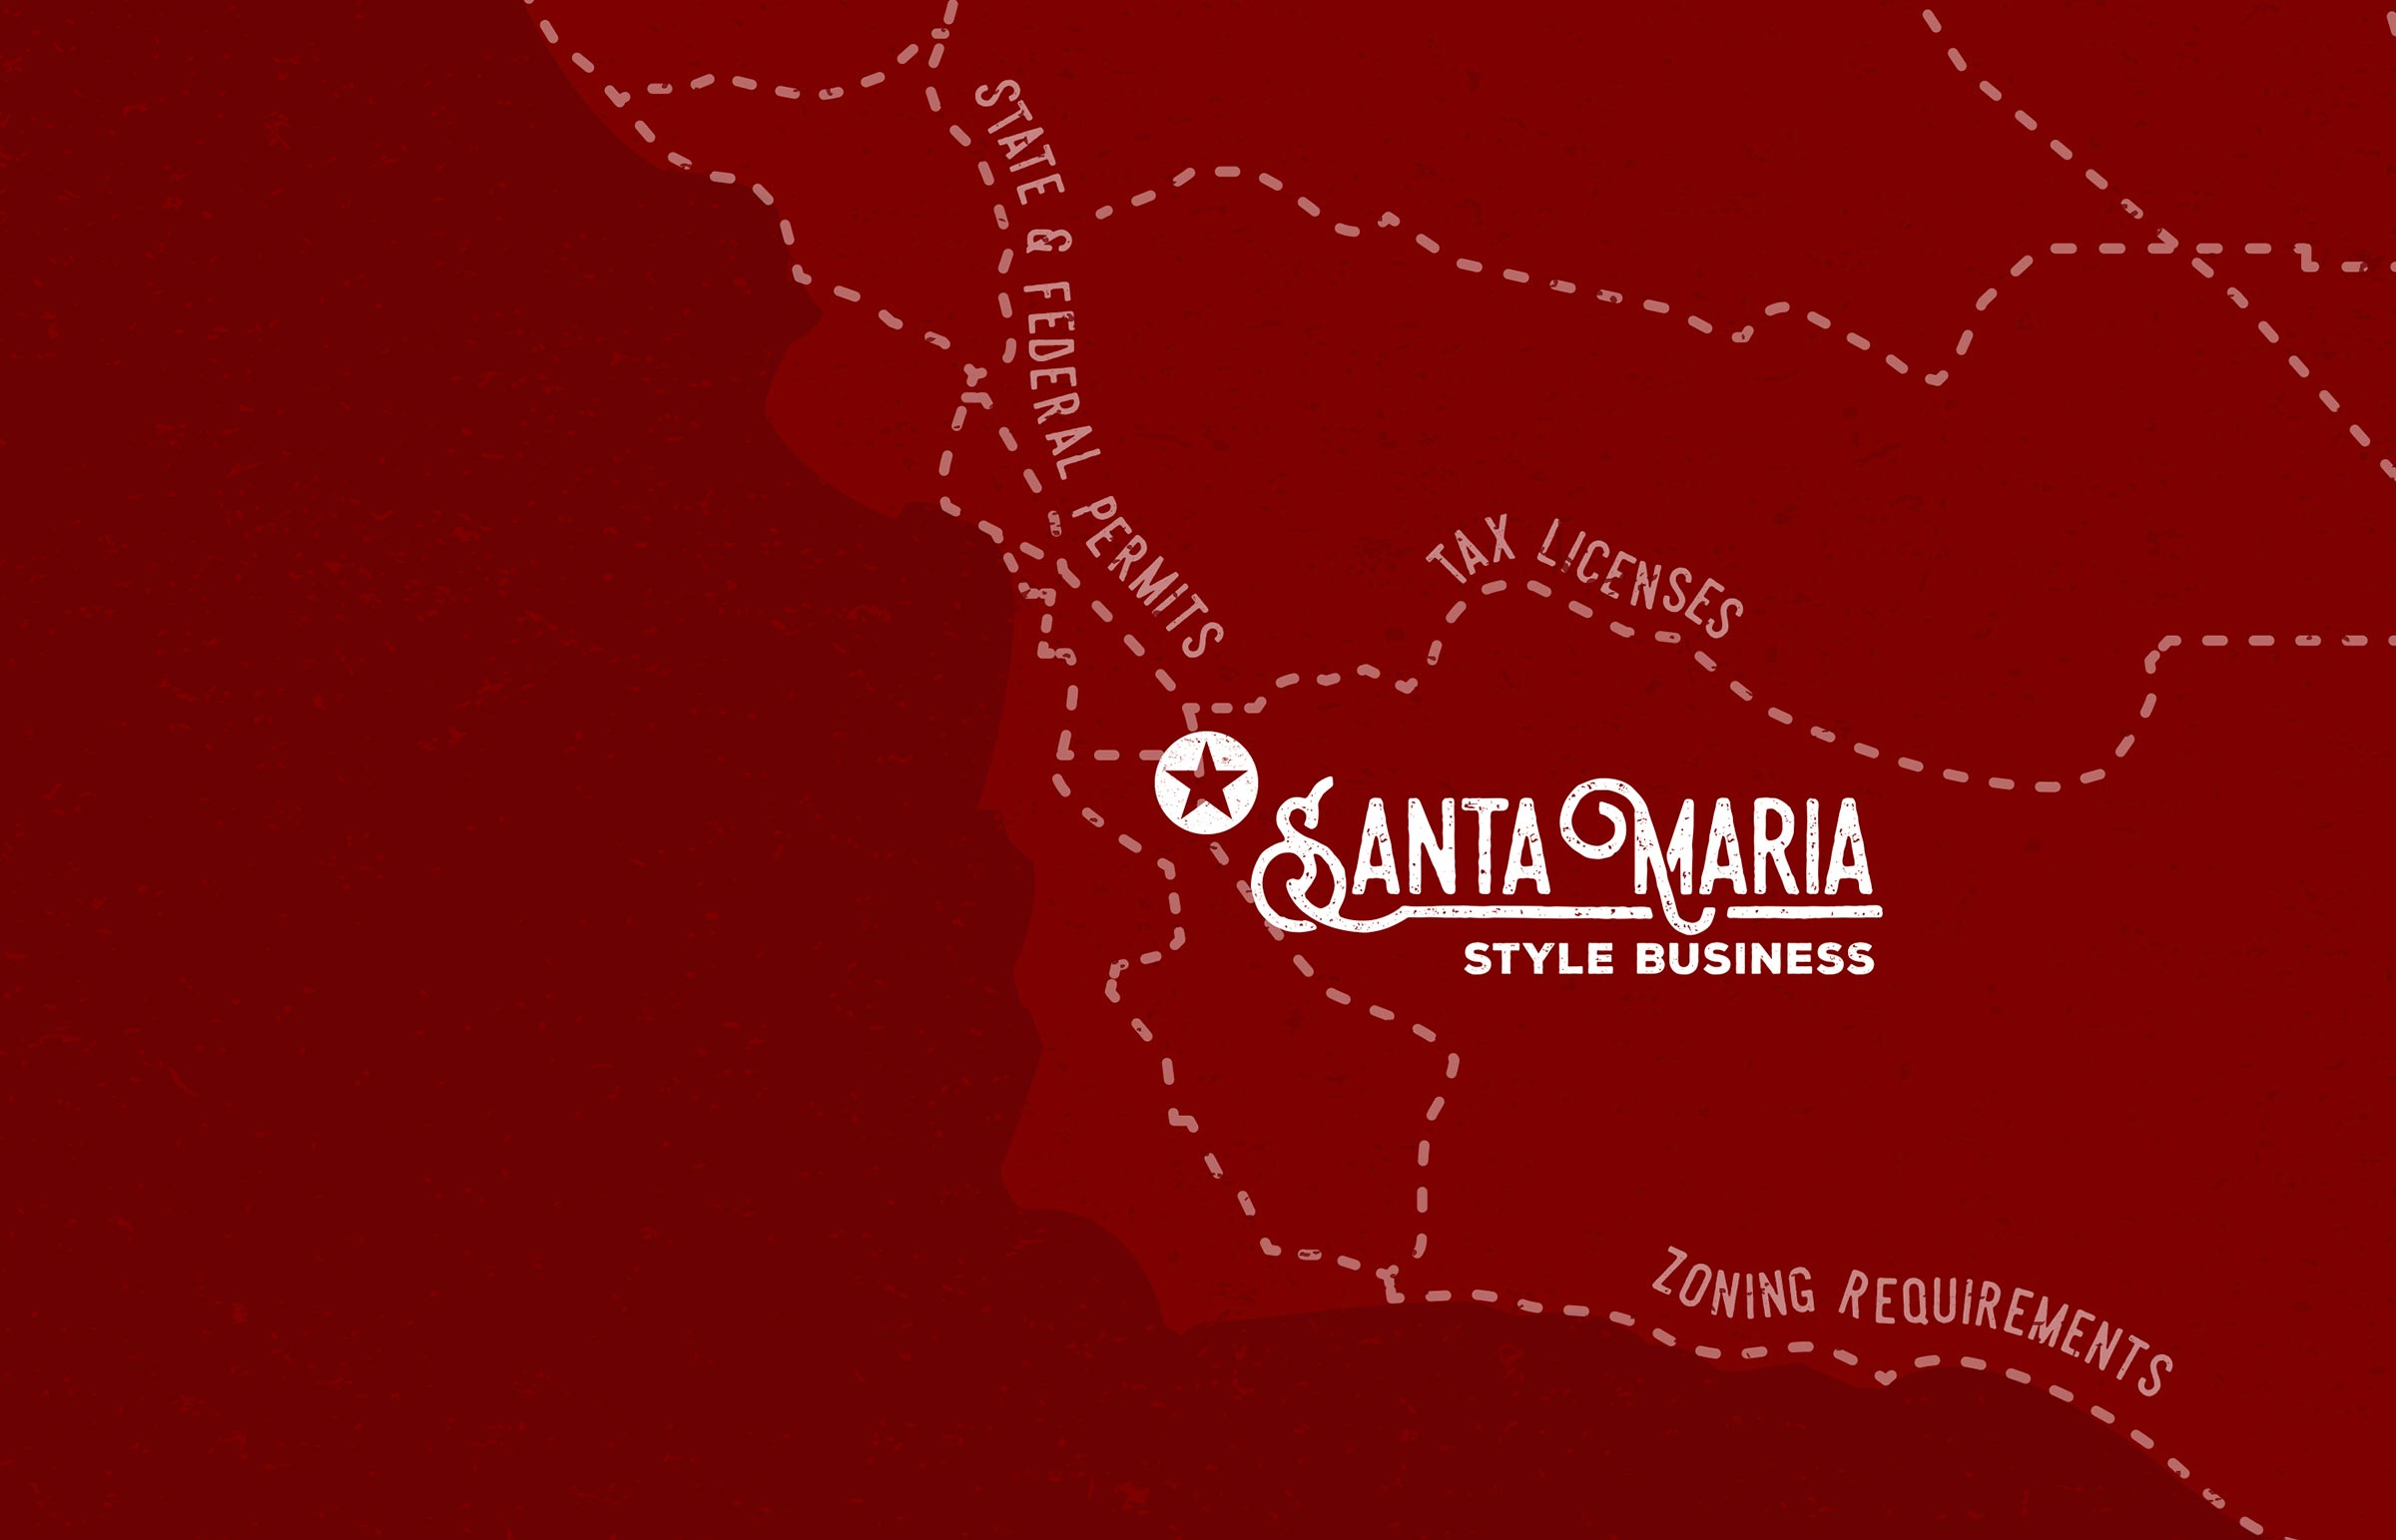 Santa-Maria-Stye-Biz-Brand-2b-Central-Coast-map